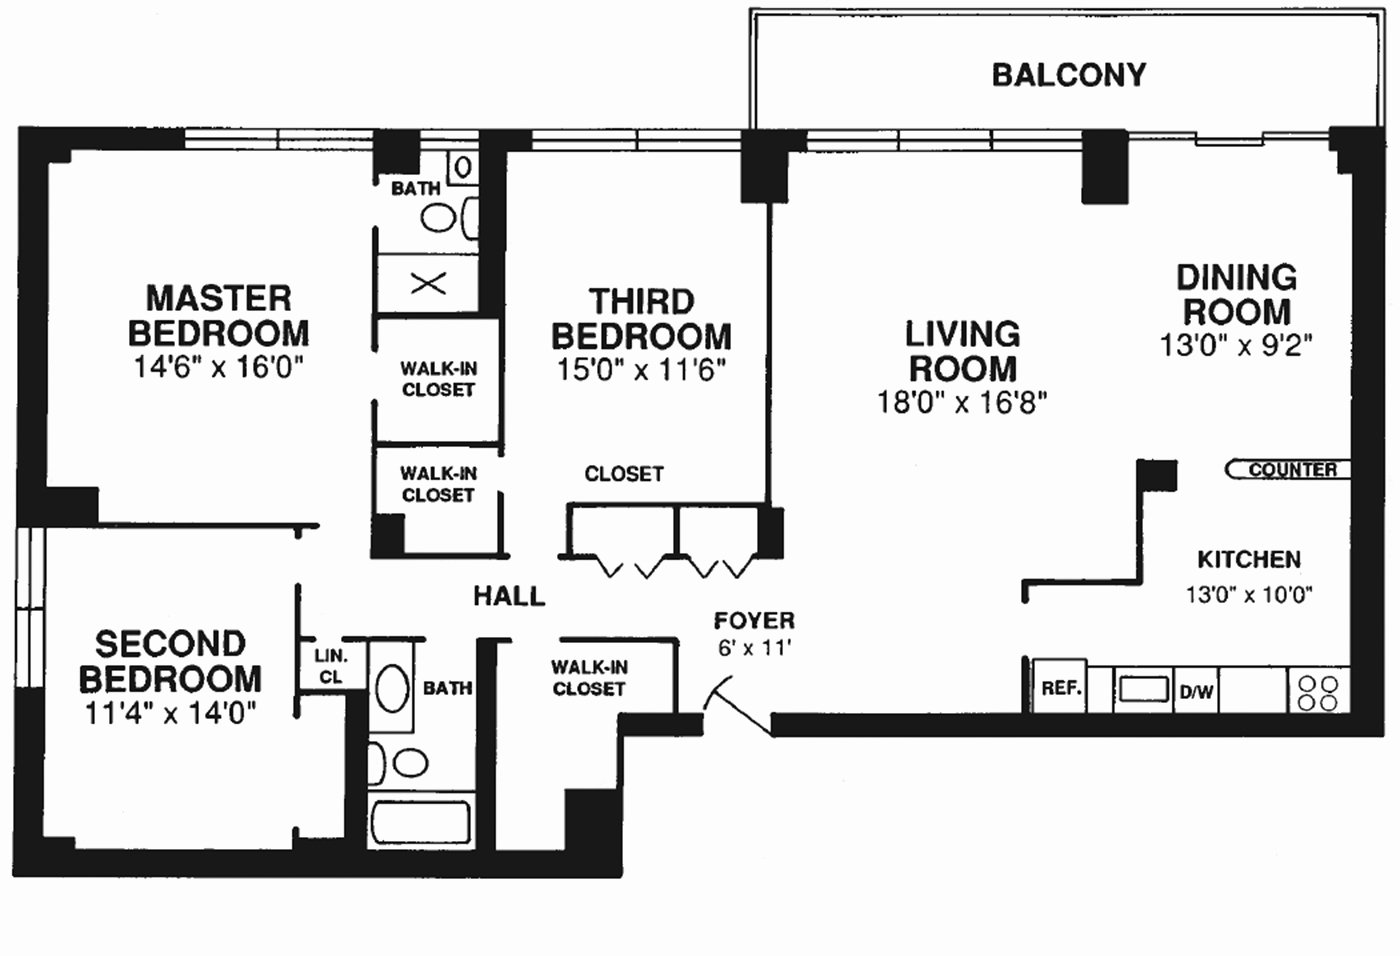 Free Floor Plan Template Luxury 20 Unique Free Floor Plan Templates House Plans